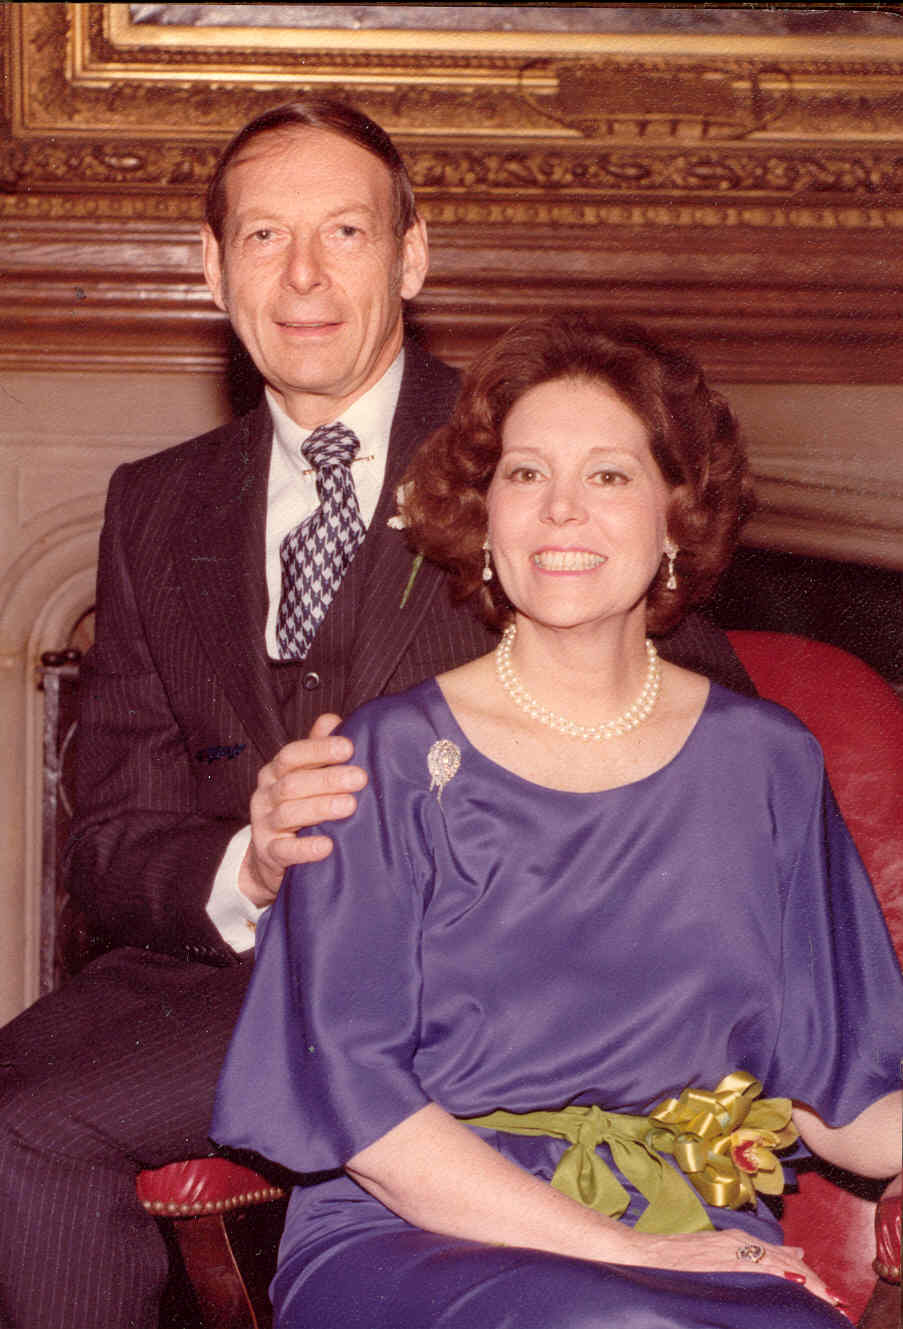 Edward Stuart Tishman (March 20, 1923- March 12, 2019) and his dear wife, Jan on the day of their son, Douglas Tishman's wedding.